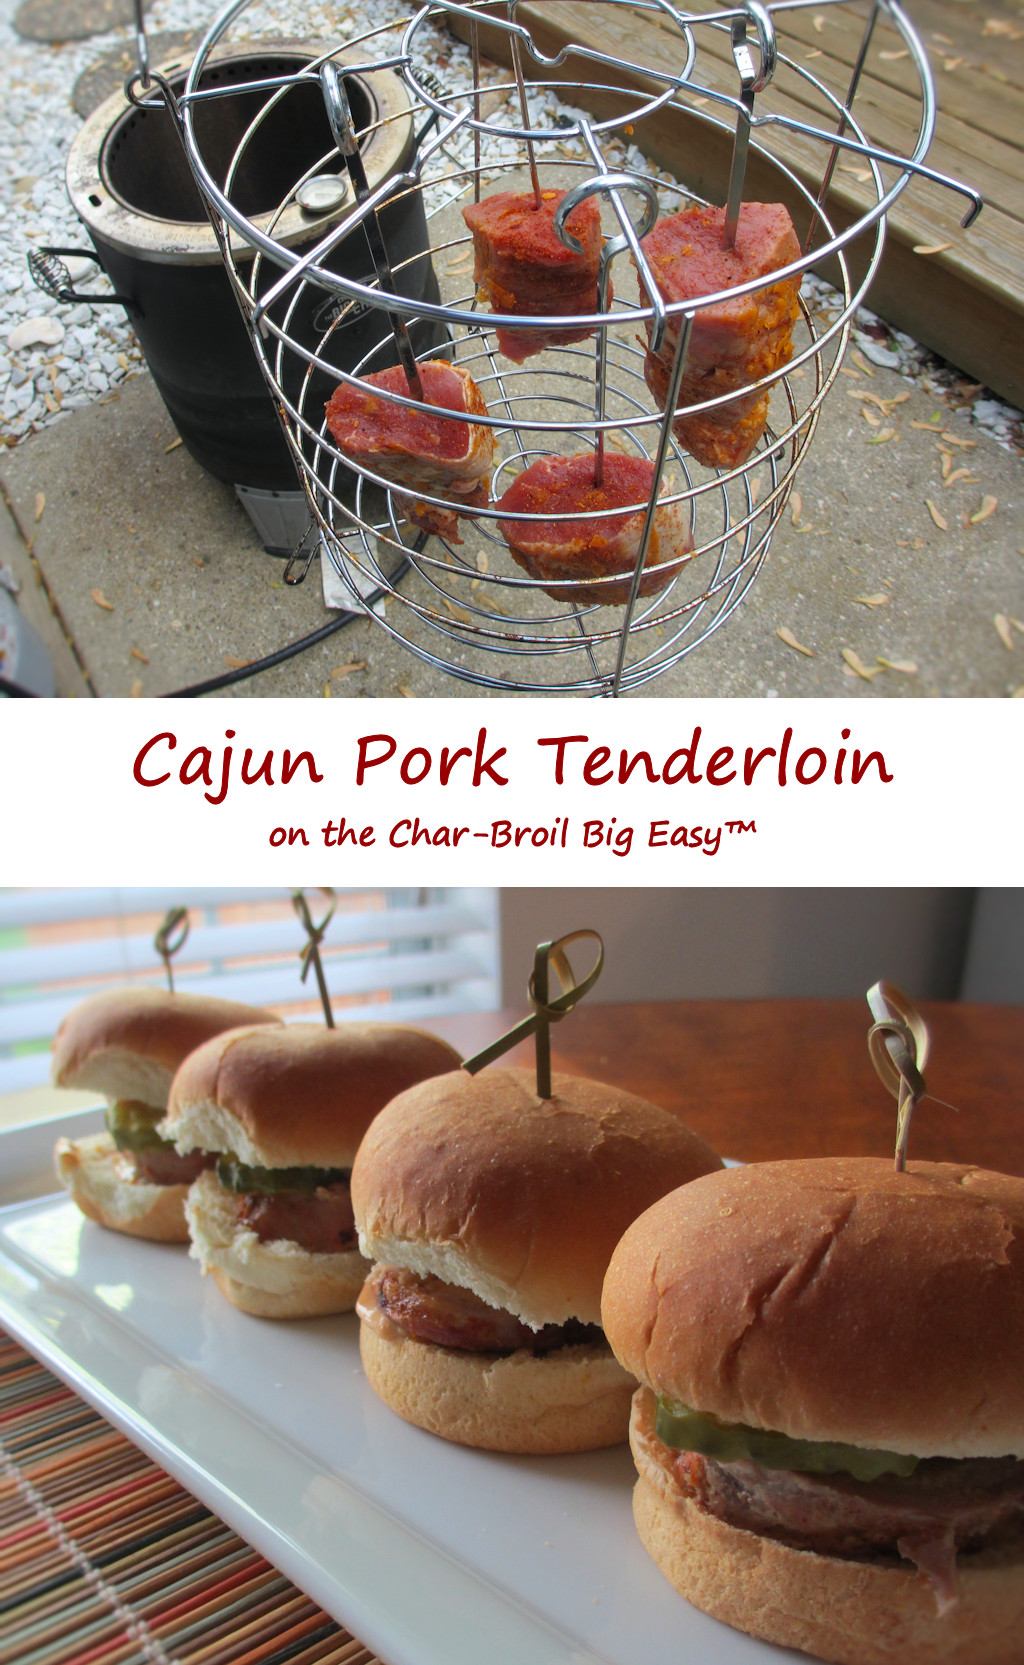 Cajun Pork Tenderloin on the Char-Broil Big Easy